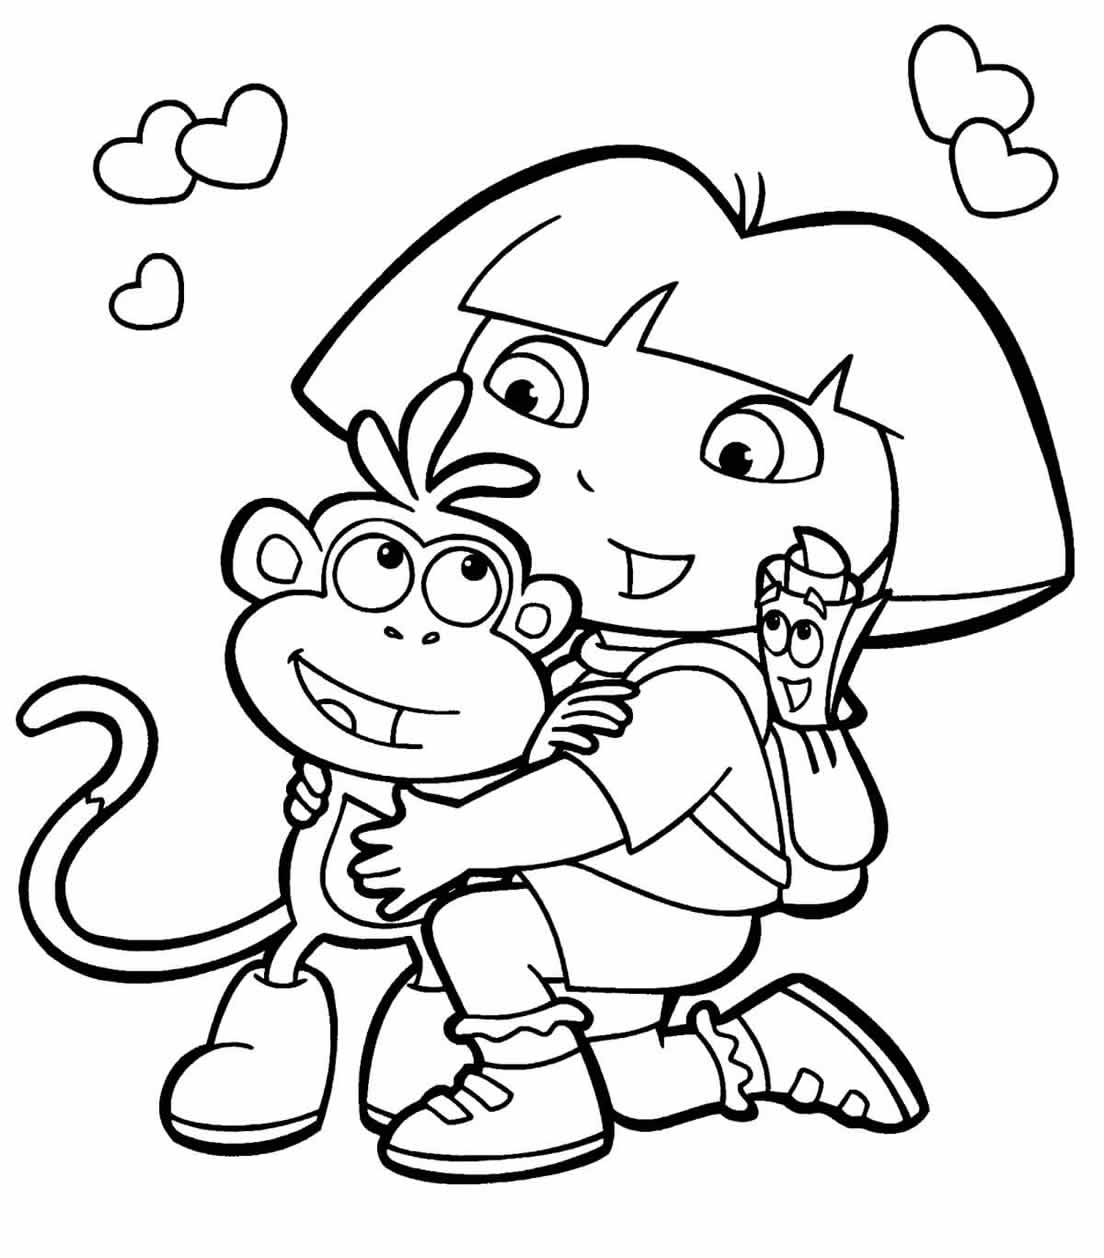 Disney coloring pages jungle book